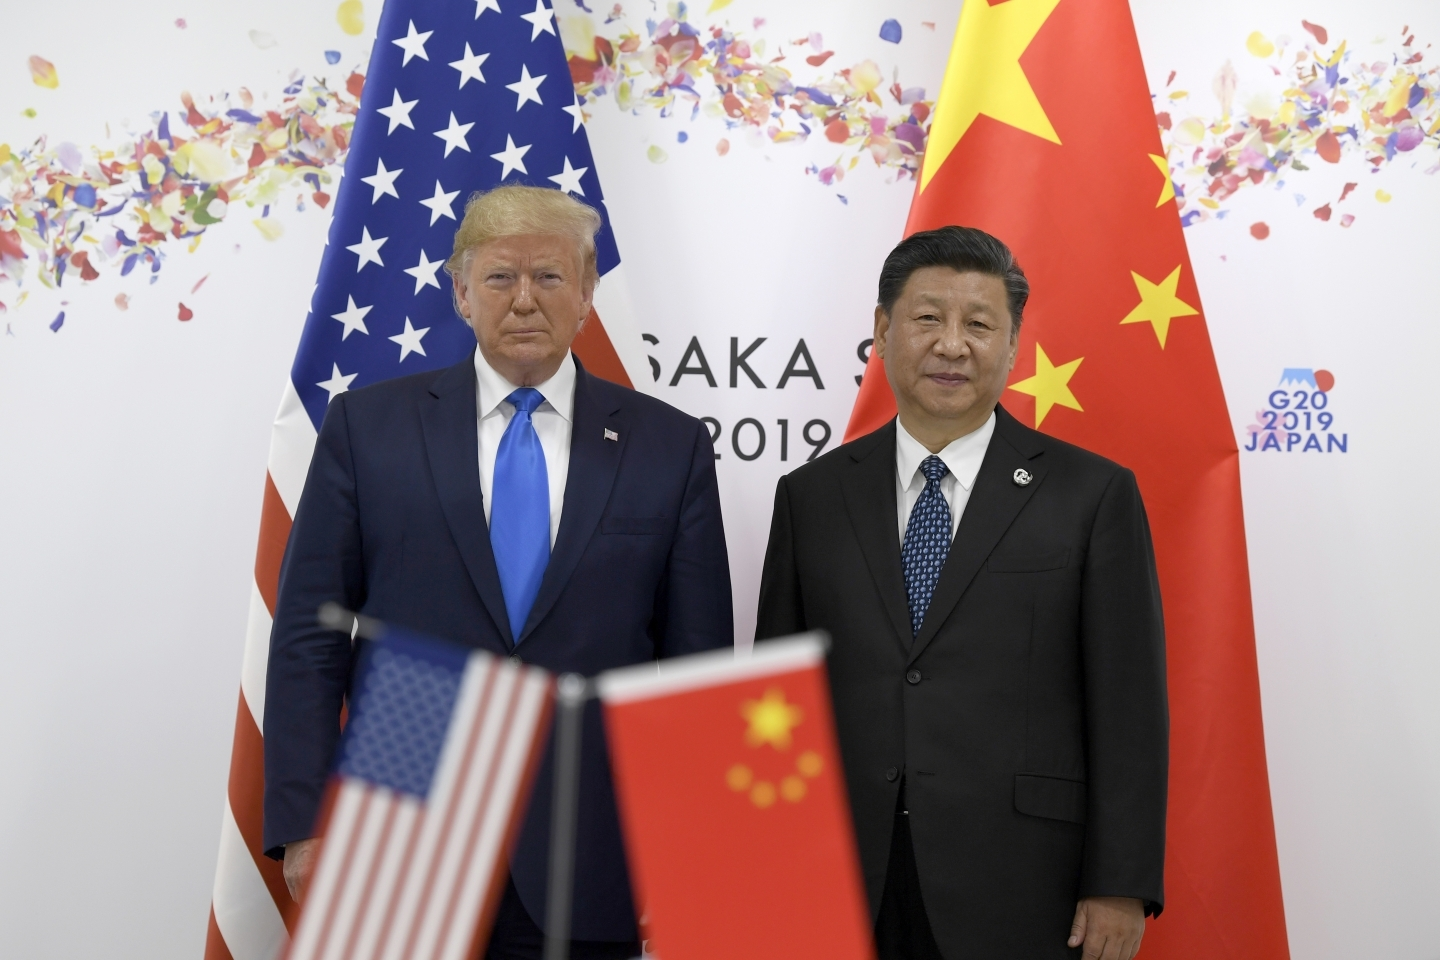 President Donald Trump, left, poses for a photo with Chinese President Xi Jinping during a meeting on the sidelines of the G20 summit in Osaka, Japan on June 29, 2019. (AP Photo/Susan Walsh)